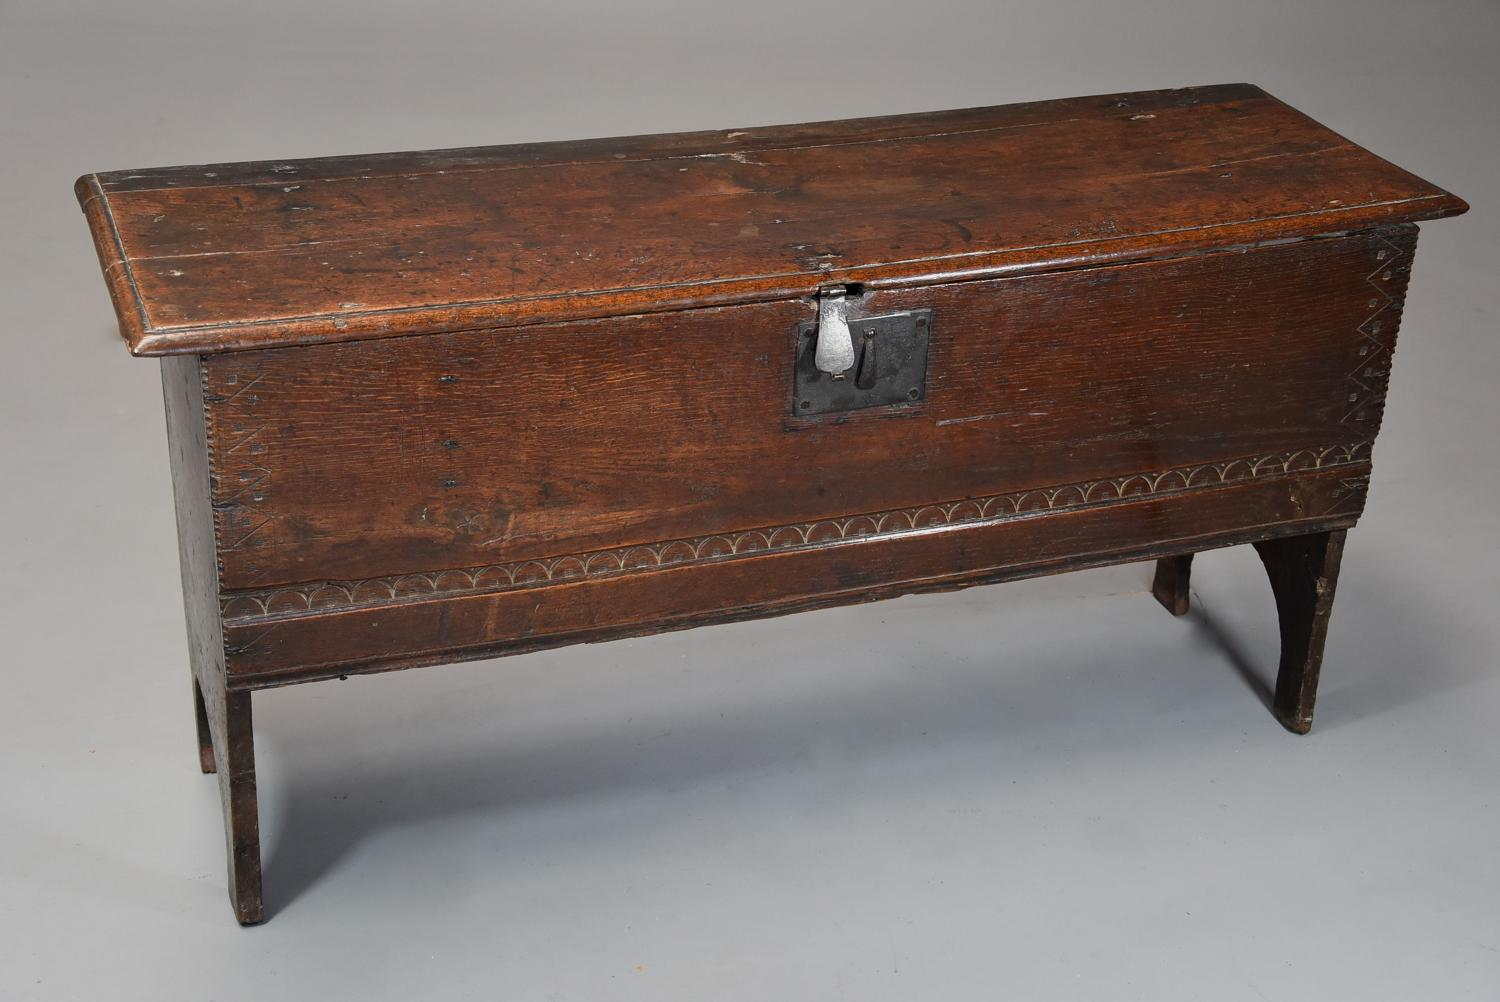 17thc oak six plank coffer with excellent patina & narrow proportions